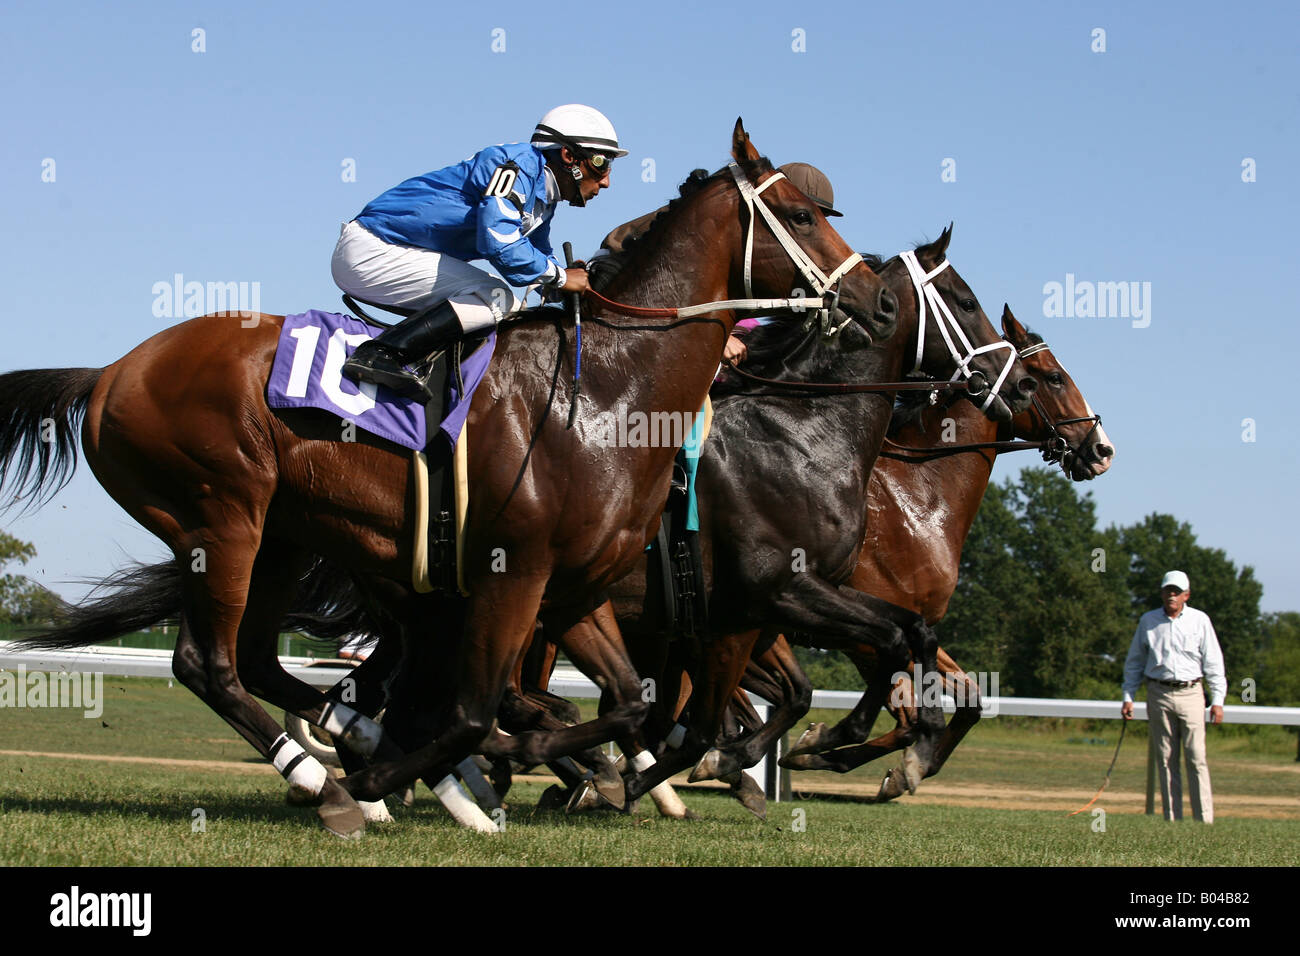 Thoroughbreds action at Monmouth Park in Oceanport New Jersey Photo By William Denver - Stock Image